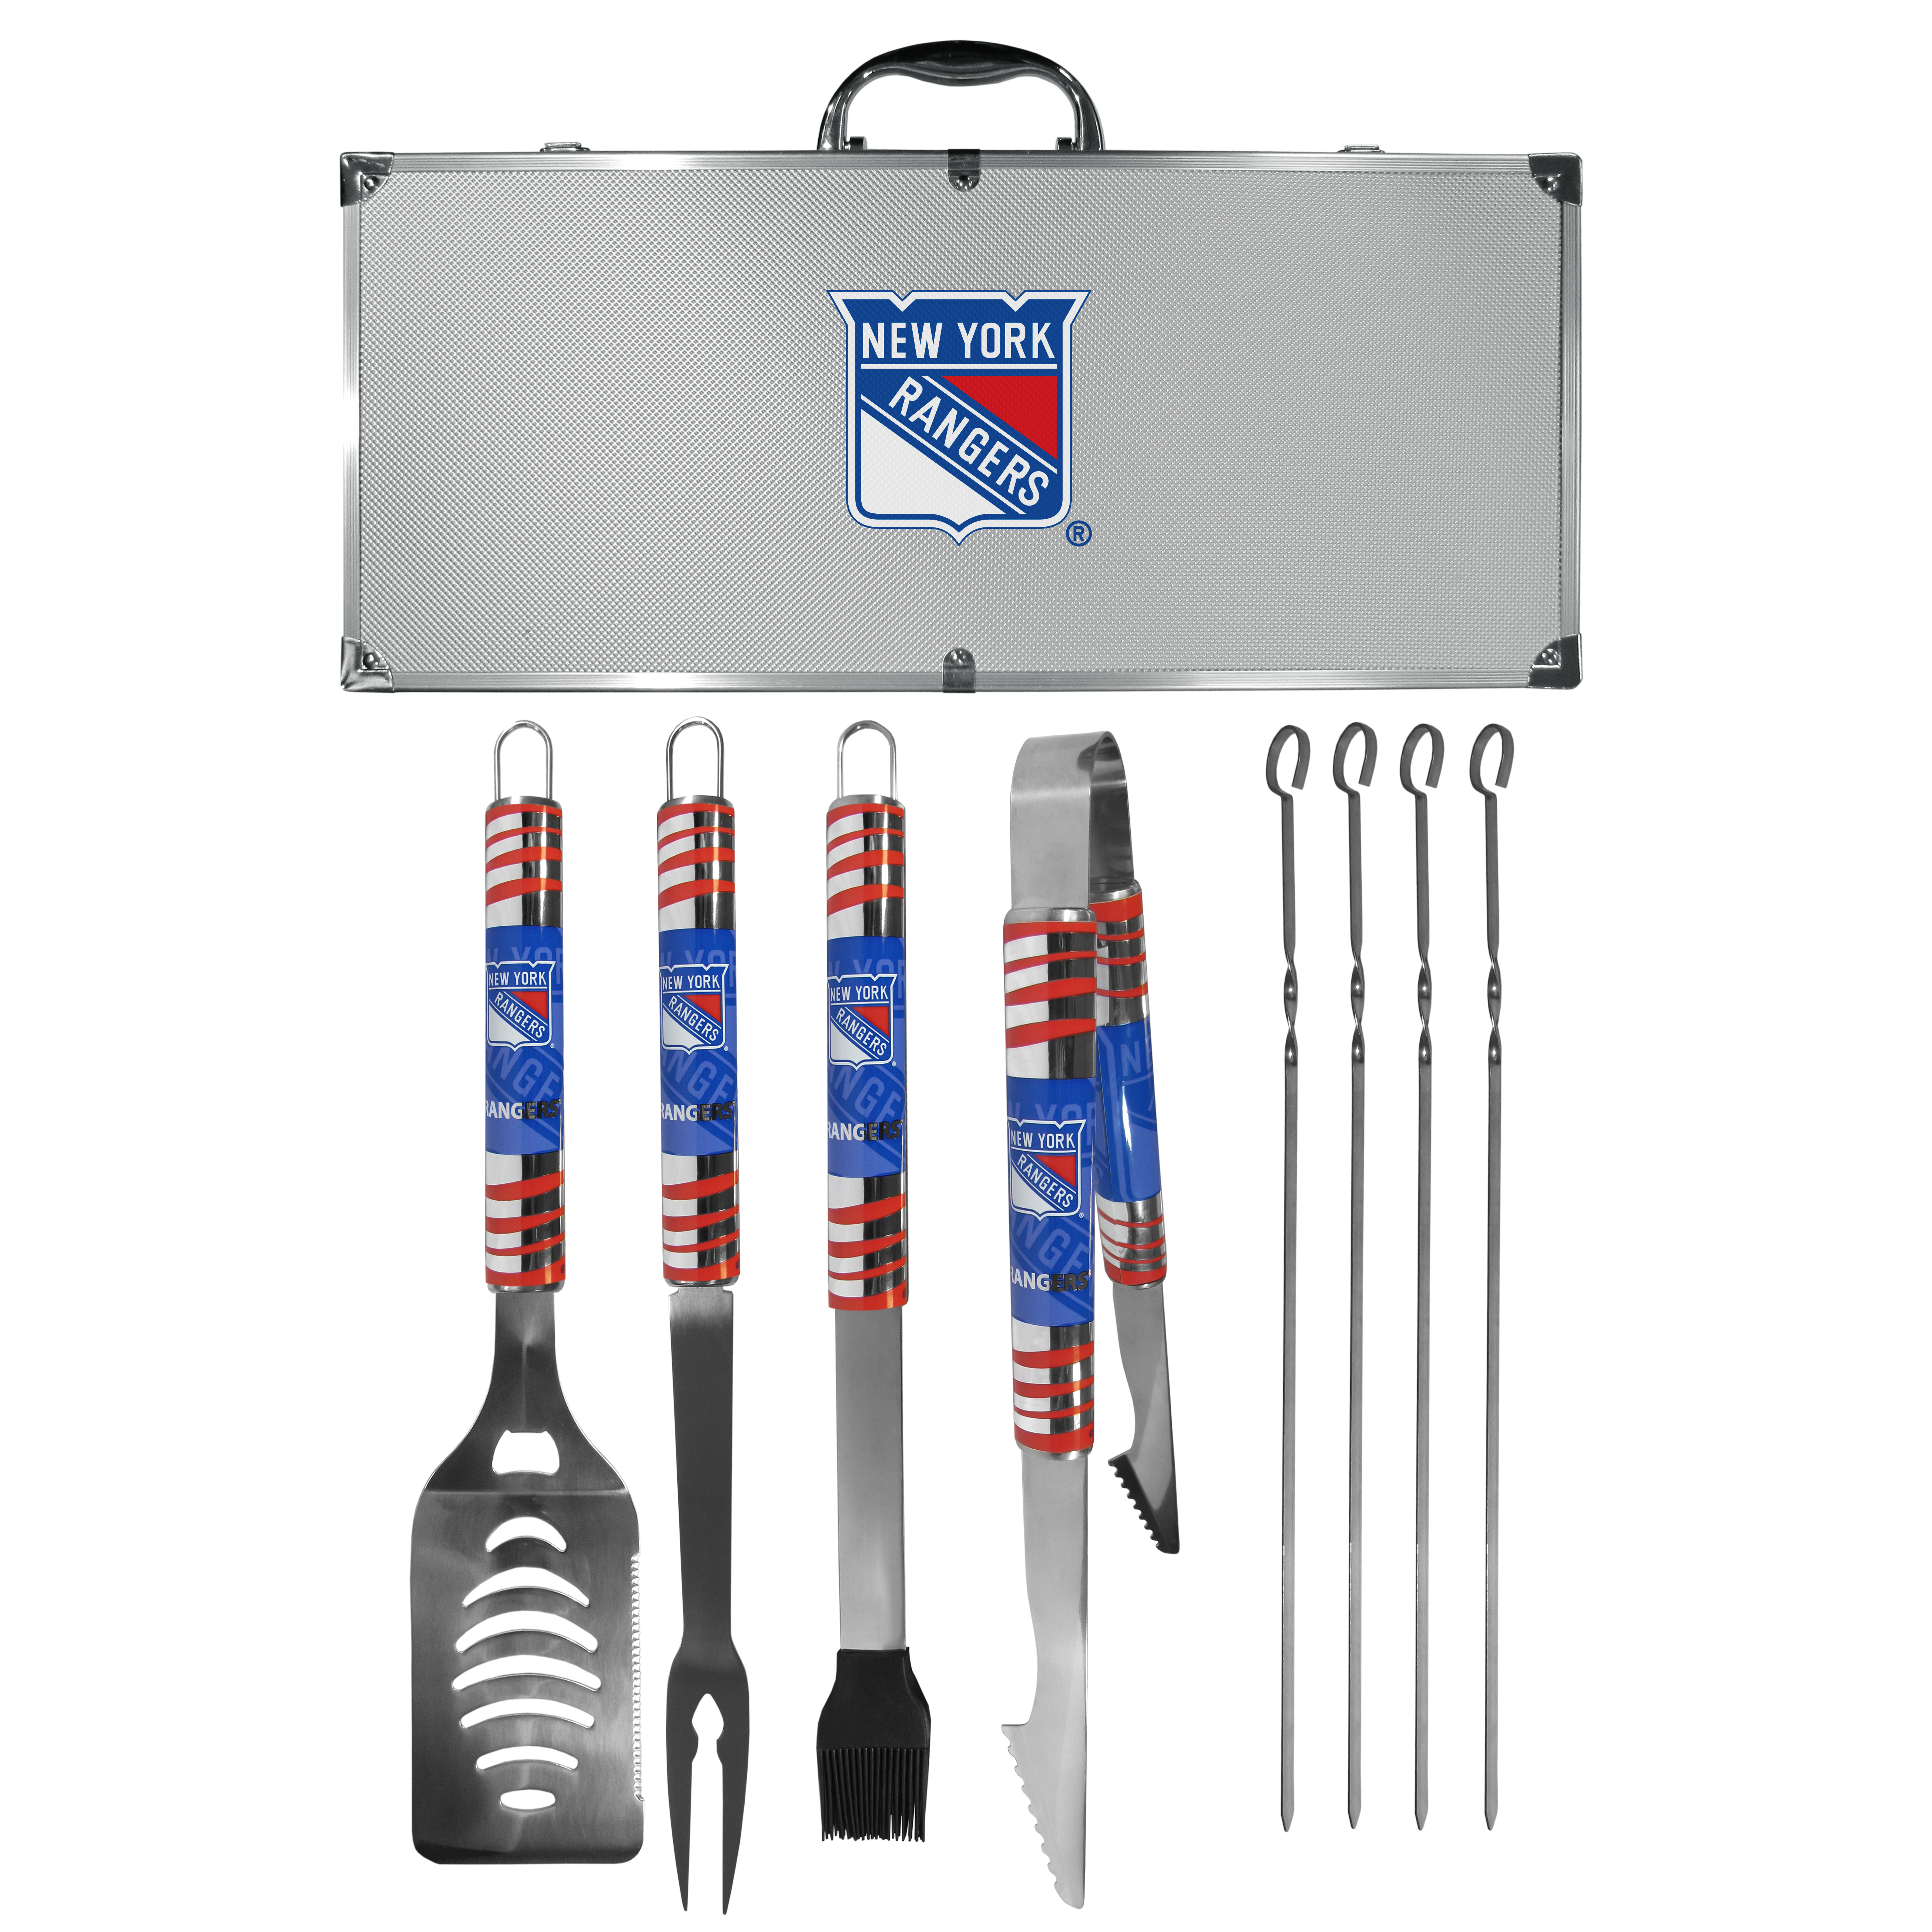 New York Rangers® 8 pc Tailgater BBQ Set - This is the ultimate New York Rangers® tailgate accessory! The high quality, 420 grade stainless steel tools are durable and well-made enough to make even the pickiest grill master smile. This complete grill accessory kit includes; 4 skewers, spatula with bottle opener and serrated knife edge, basting brush, tongs and a fork. The 18 inch metal carrying case is perfect for great outdoor use making grilling an ease while camping, tailgating or while having a game day party on your patio. The tools are 17 inches long and feature vivid team graphics. The metal case features a large team emblem with exceptional detail. This high-end men's gift is sure to be a hit as a present on Father's Day or Christmas.